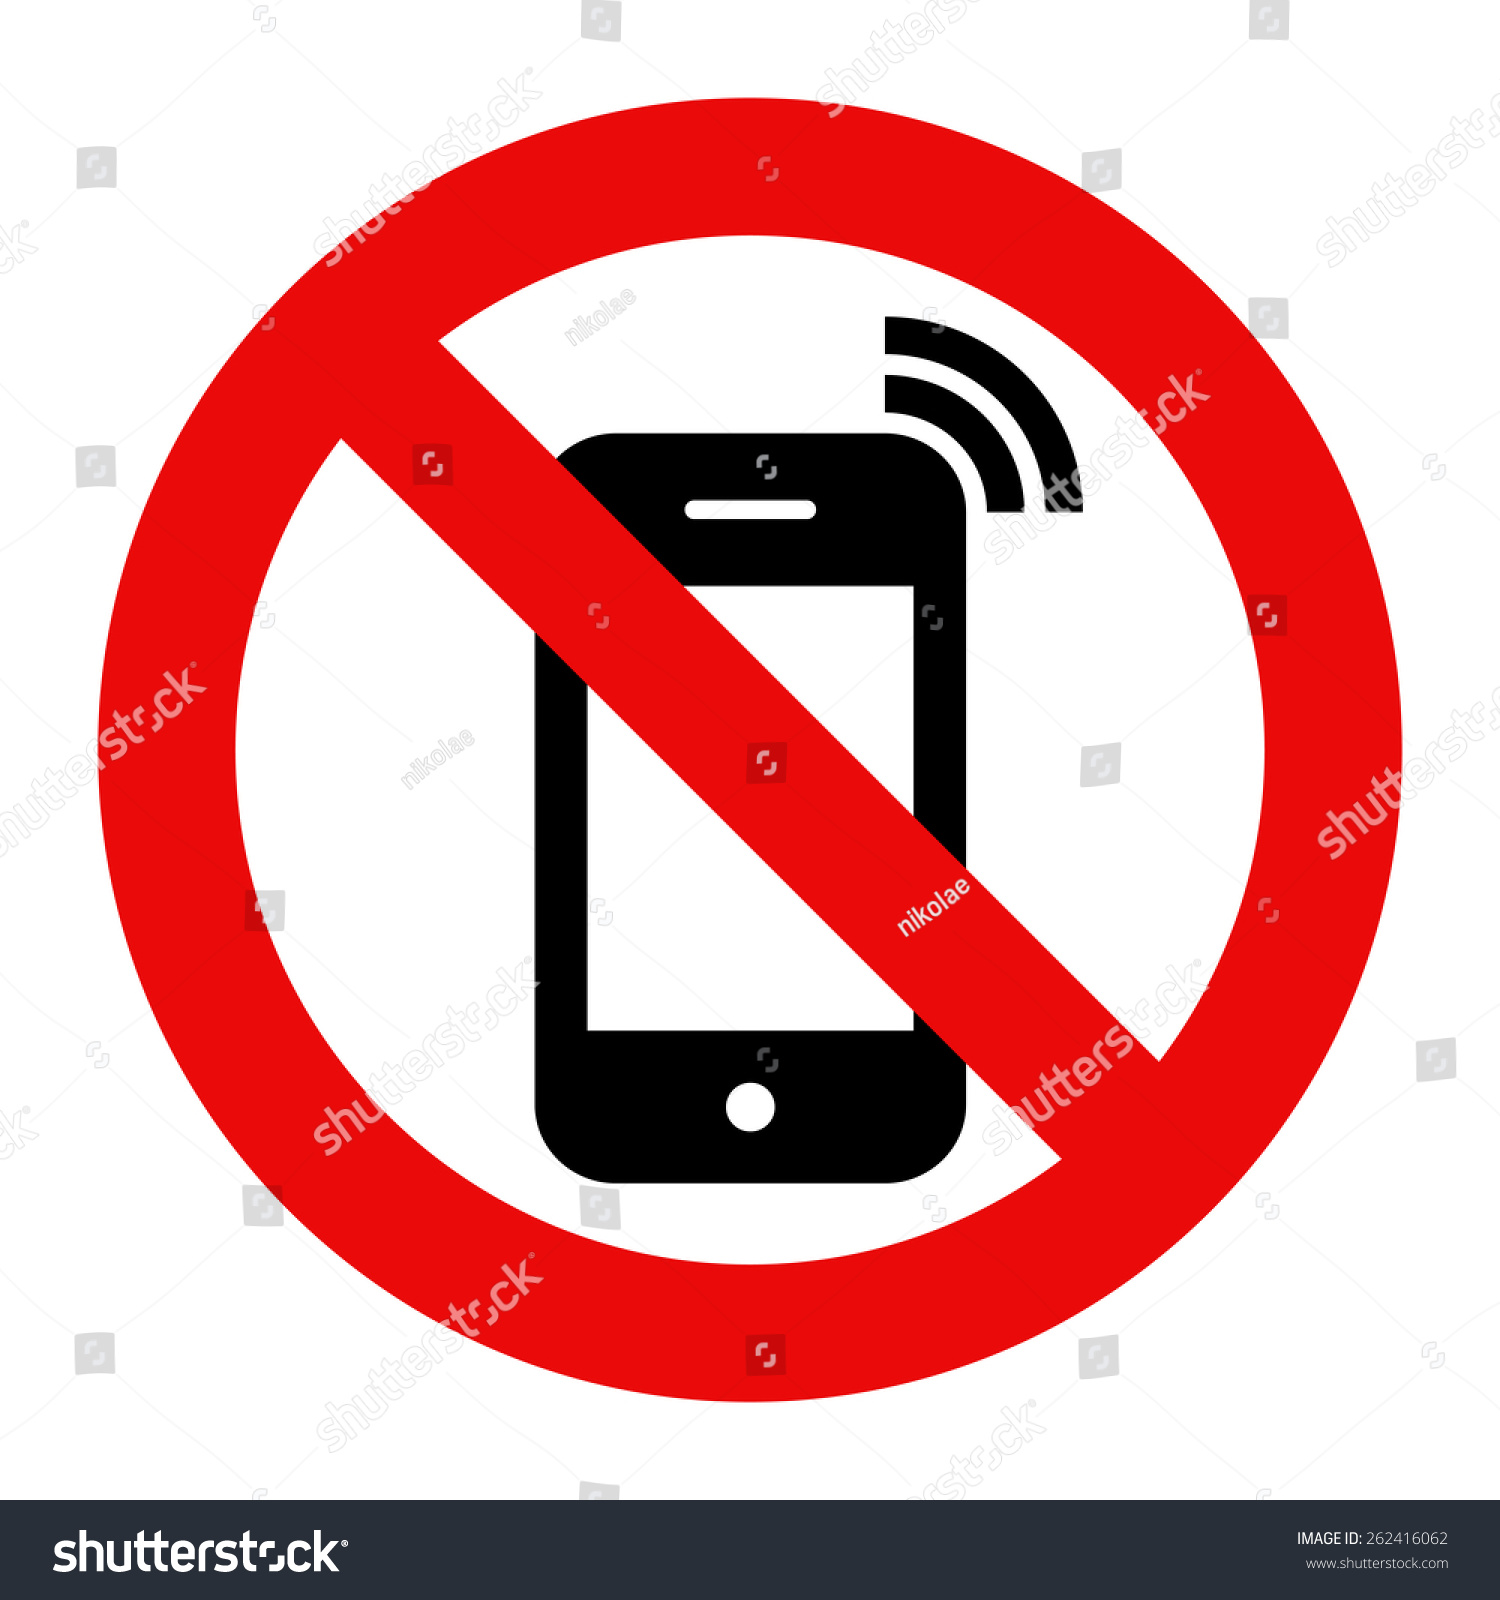 plane ringtone download with Stock Vector Mobile Phone Prohibited No Cell Phone Sign Isolated On White Background on Stock Vector Mobile Phone Prohibited No Cell Phone Sign Isolated On White Background also Gta Iv Cheats fwxte further Bruno Mars Photo furthermore 588374 besides 40007054.